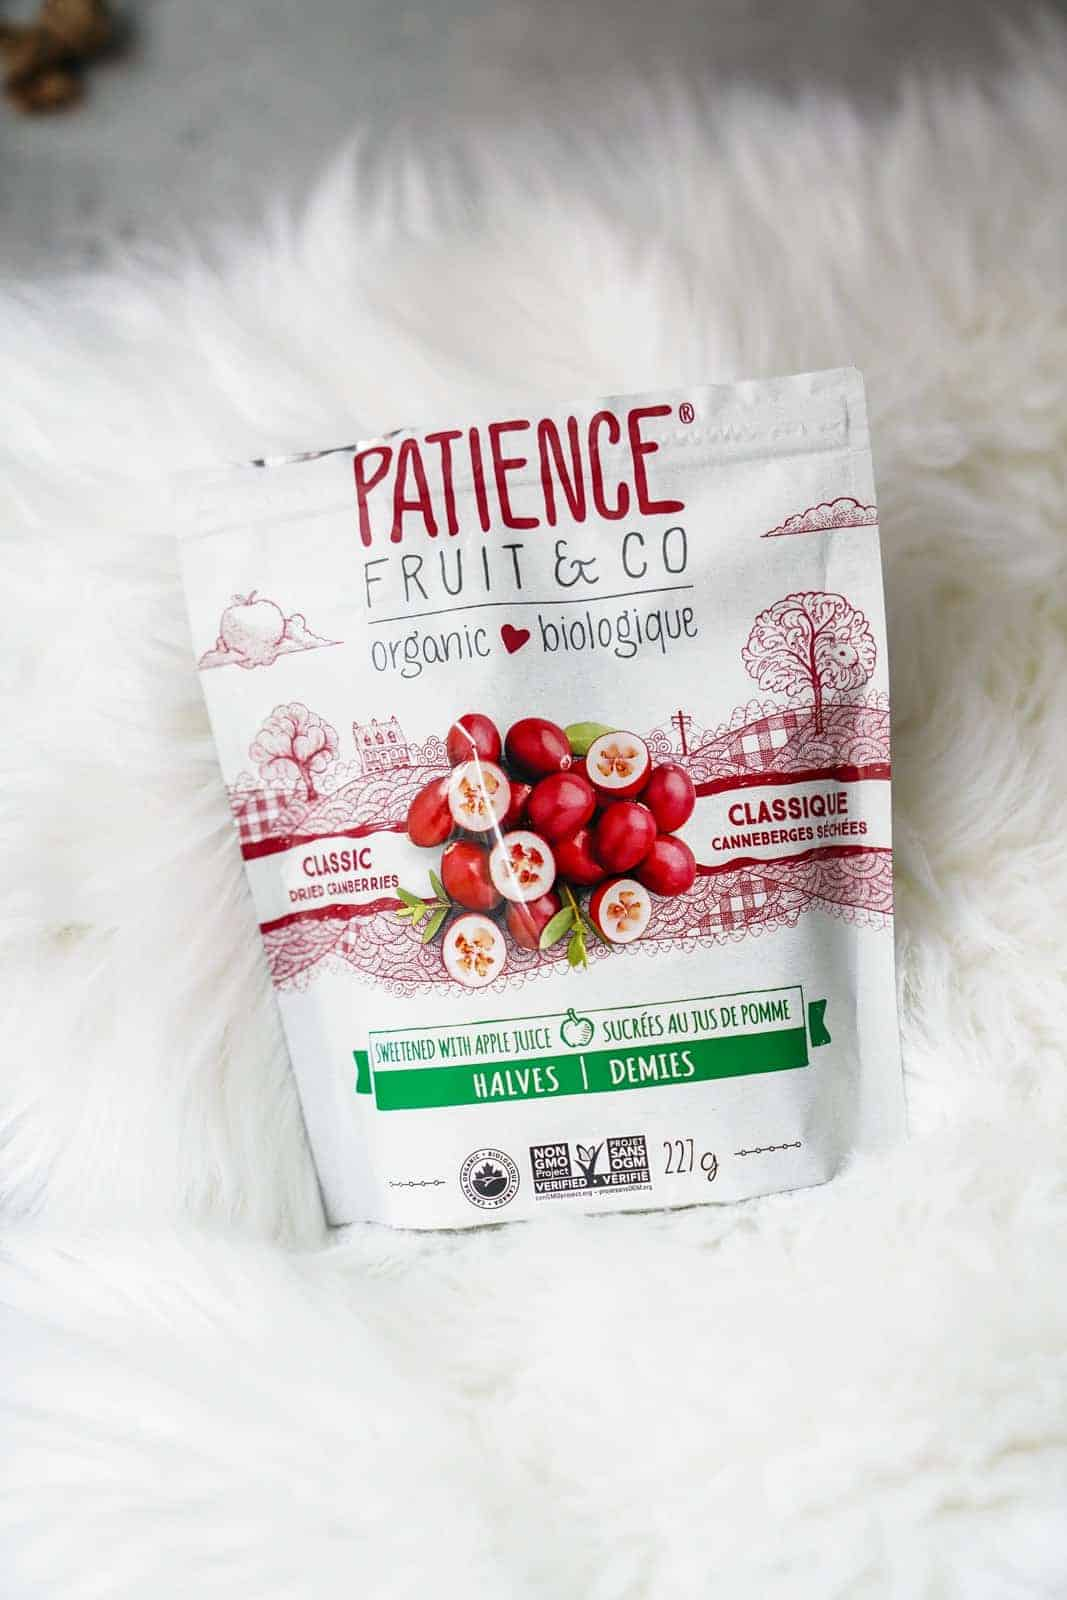 Patience Fruit & Co. Organic Vegan Cranberries laying on fluffy rug.